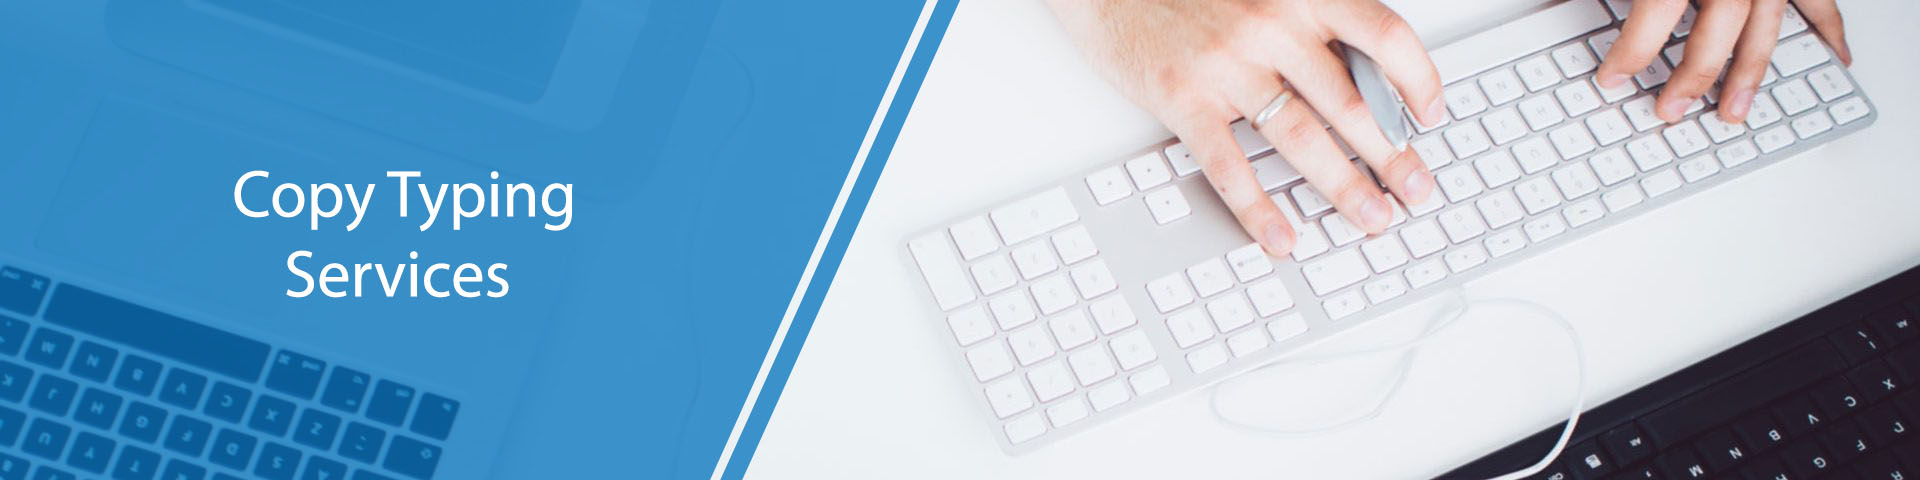 Copy typing Services